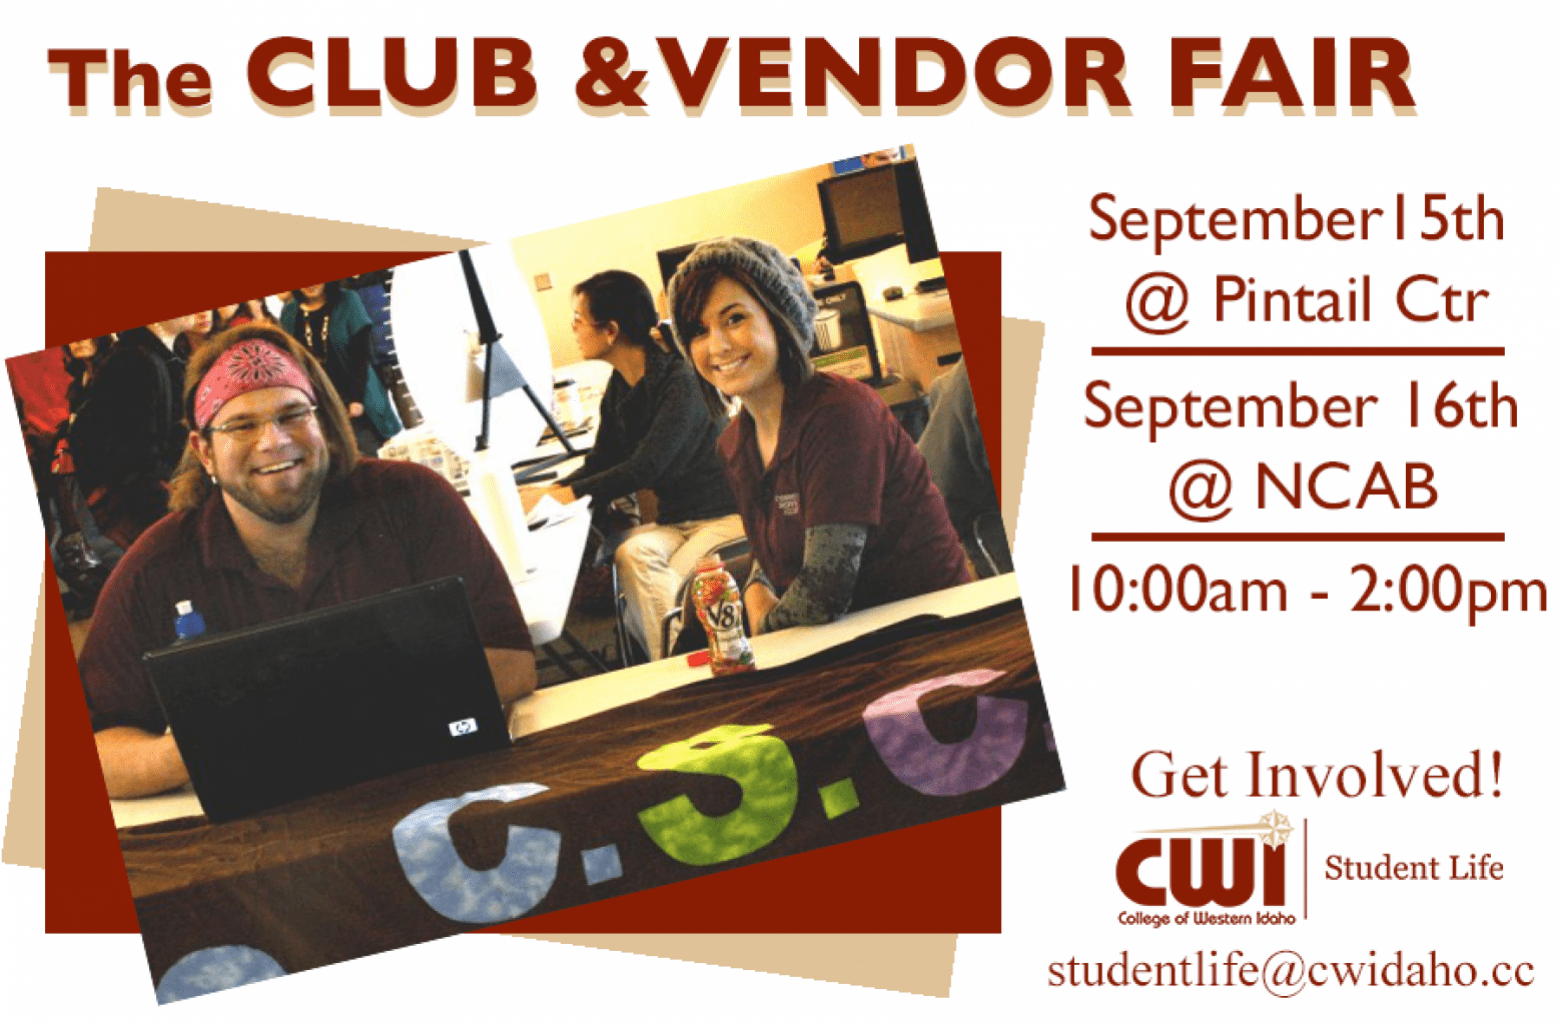 Club and Vendor Fair - September 15 at Pintail Center and September 16th @ NCAB from 10:00am to 2:00pm